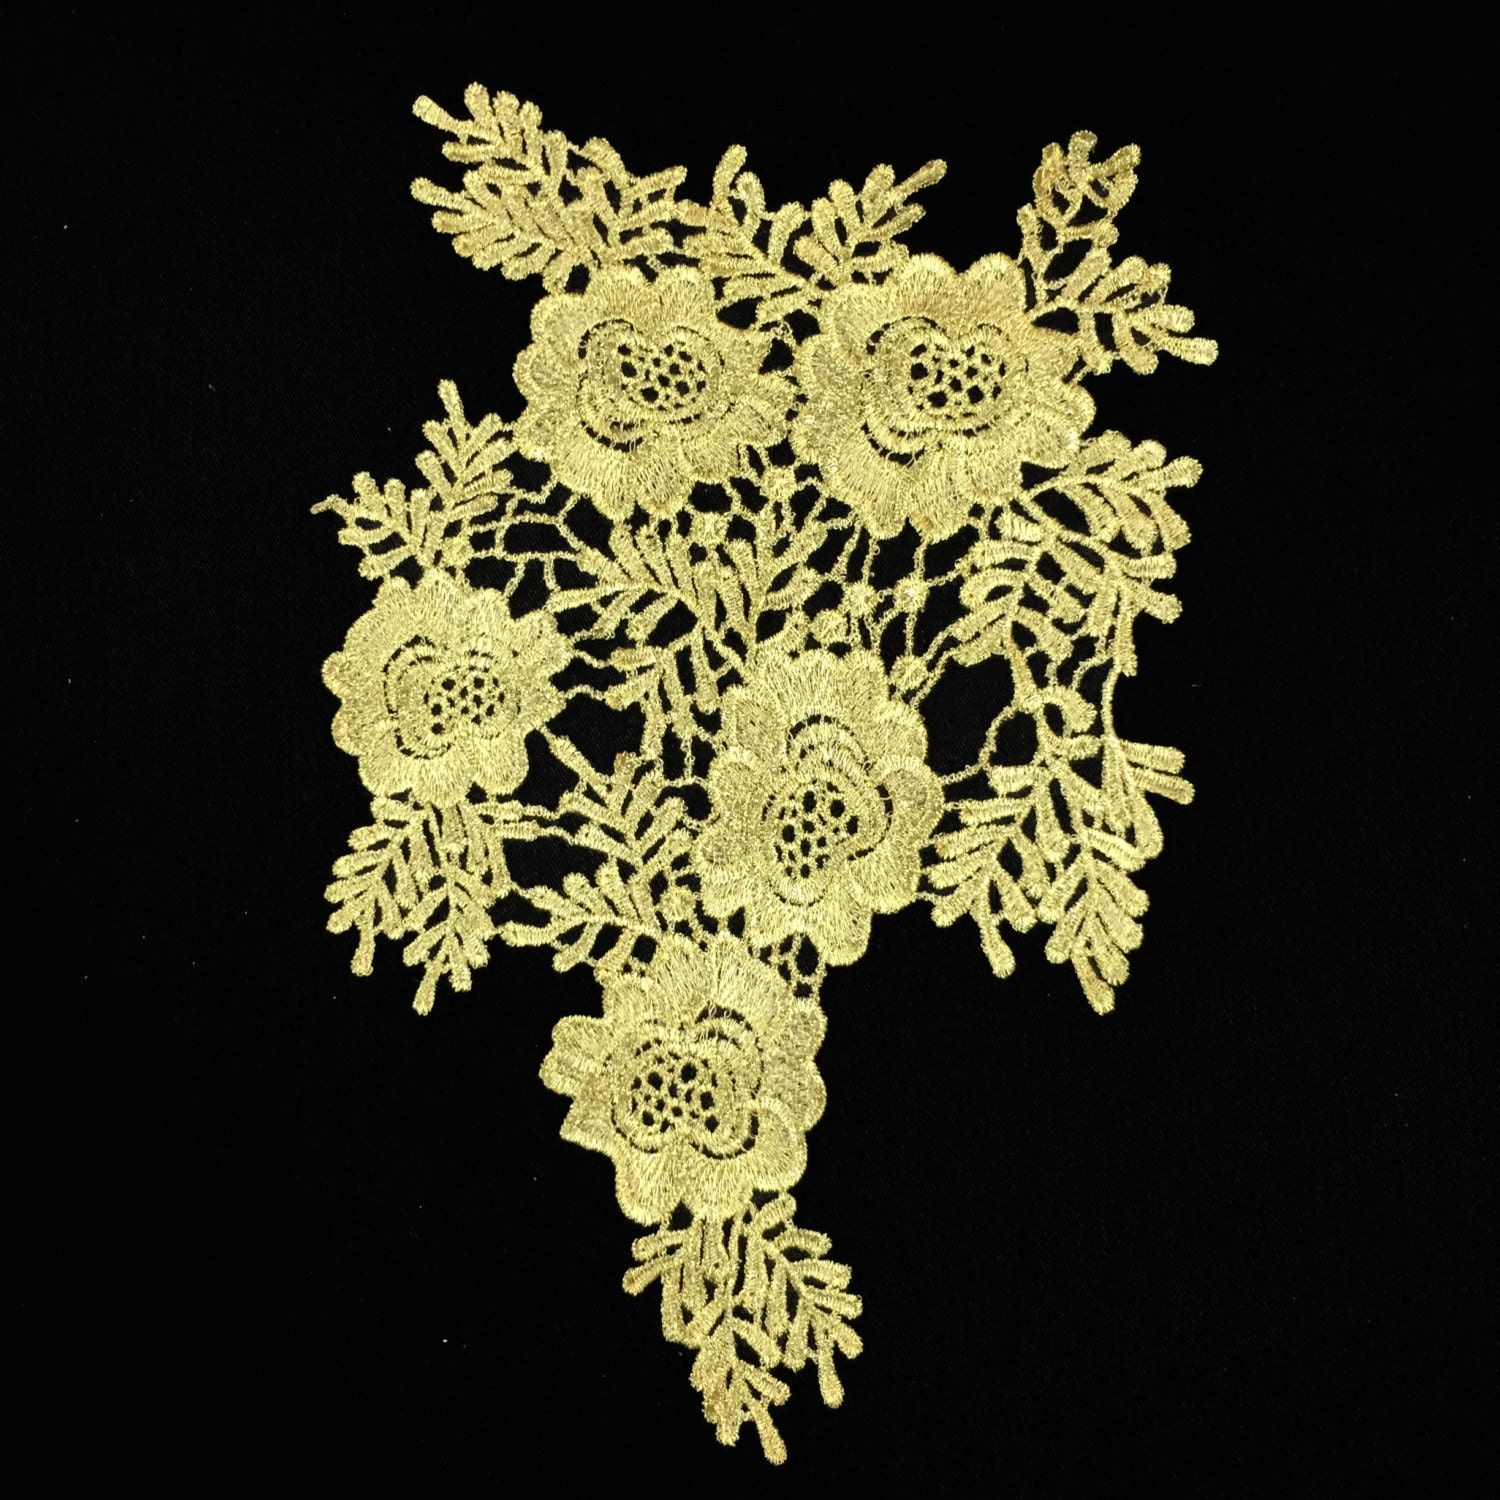 Gold embroidered floral lace crochet applique flowers